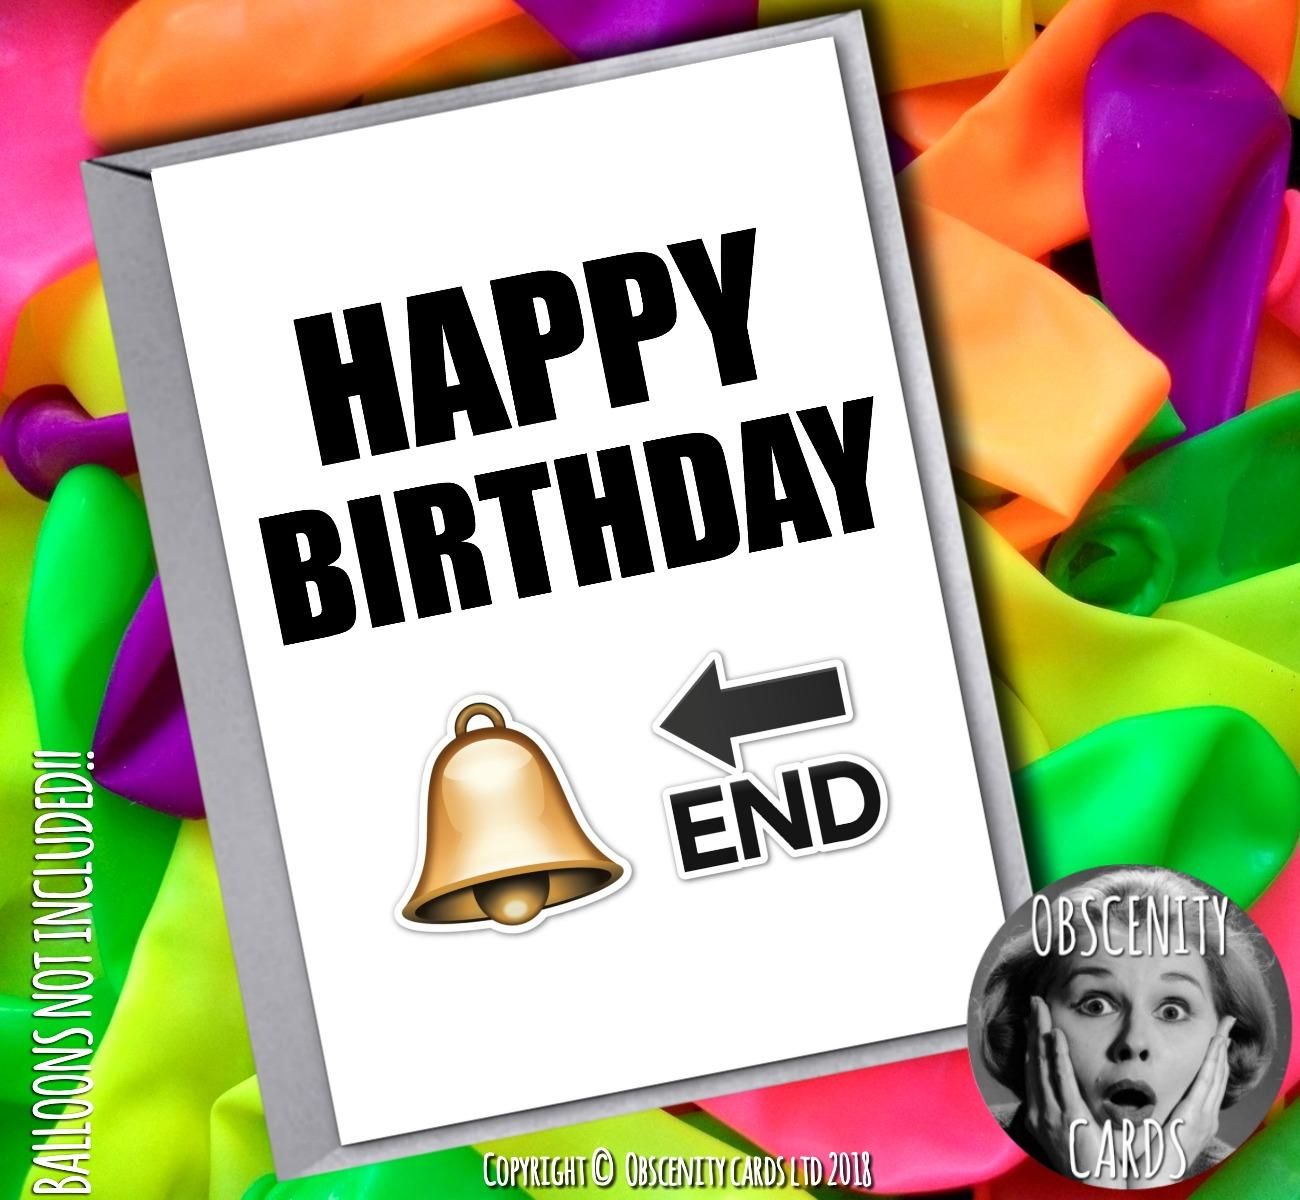 Emoji Cards - Happy Birthday Card Bell End